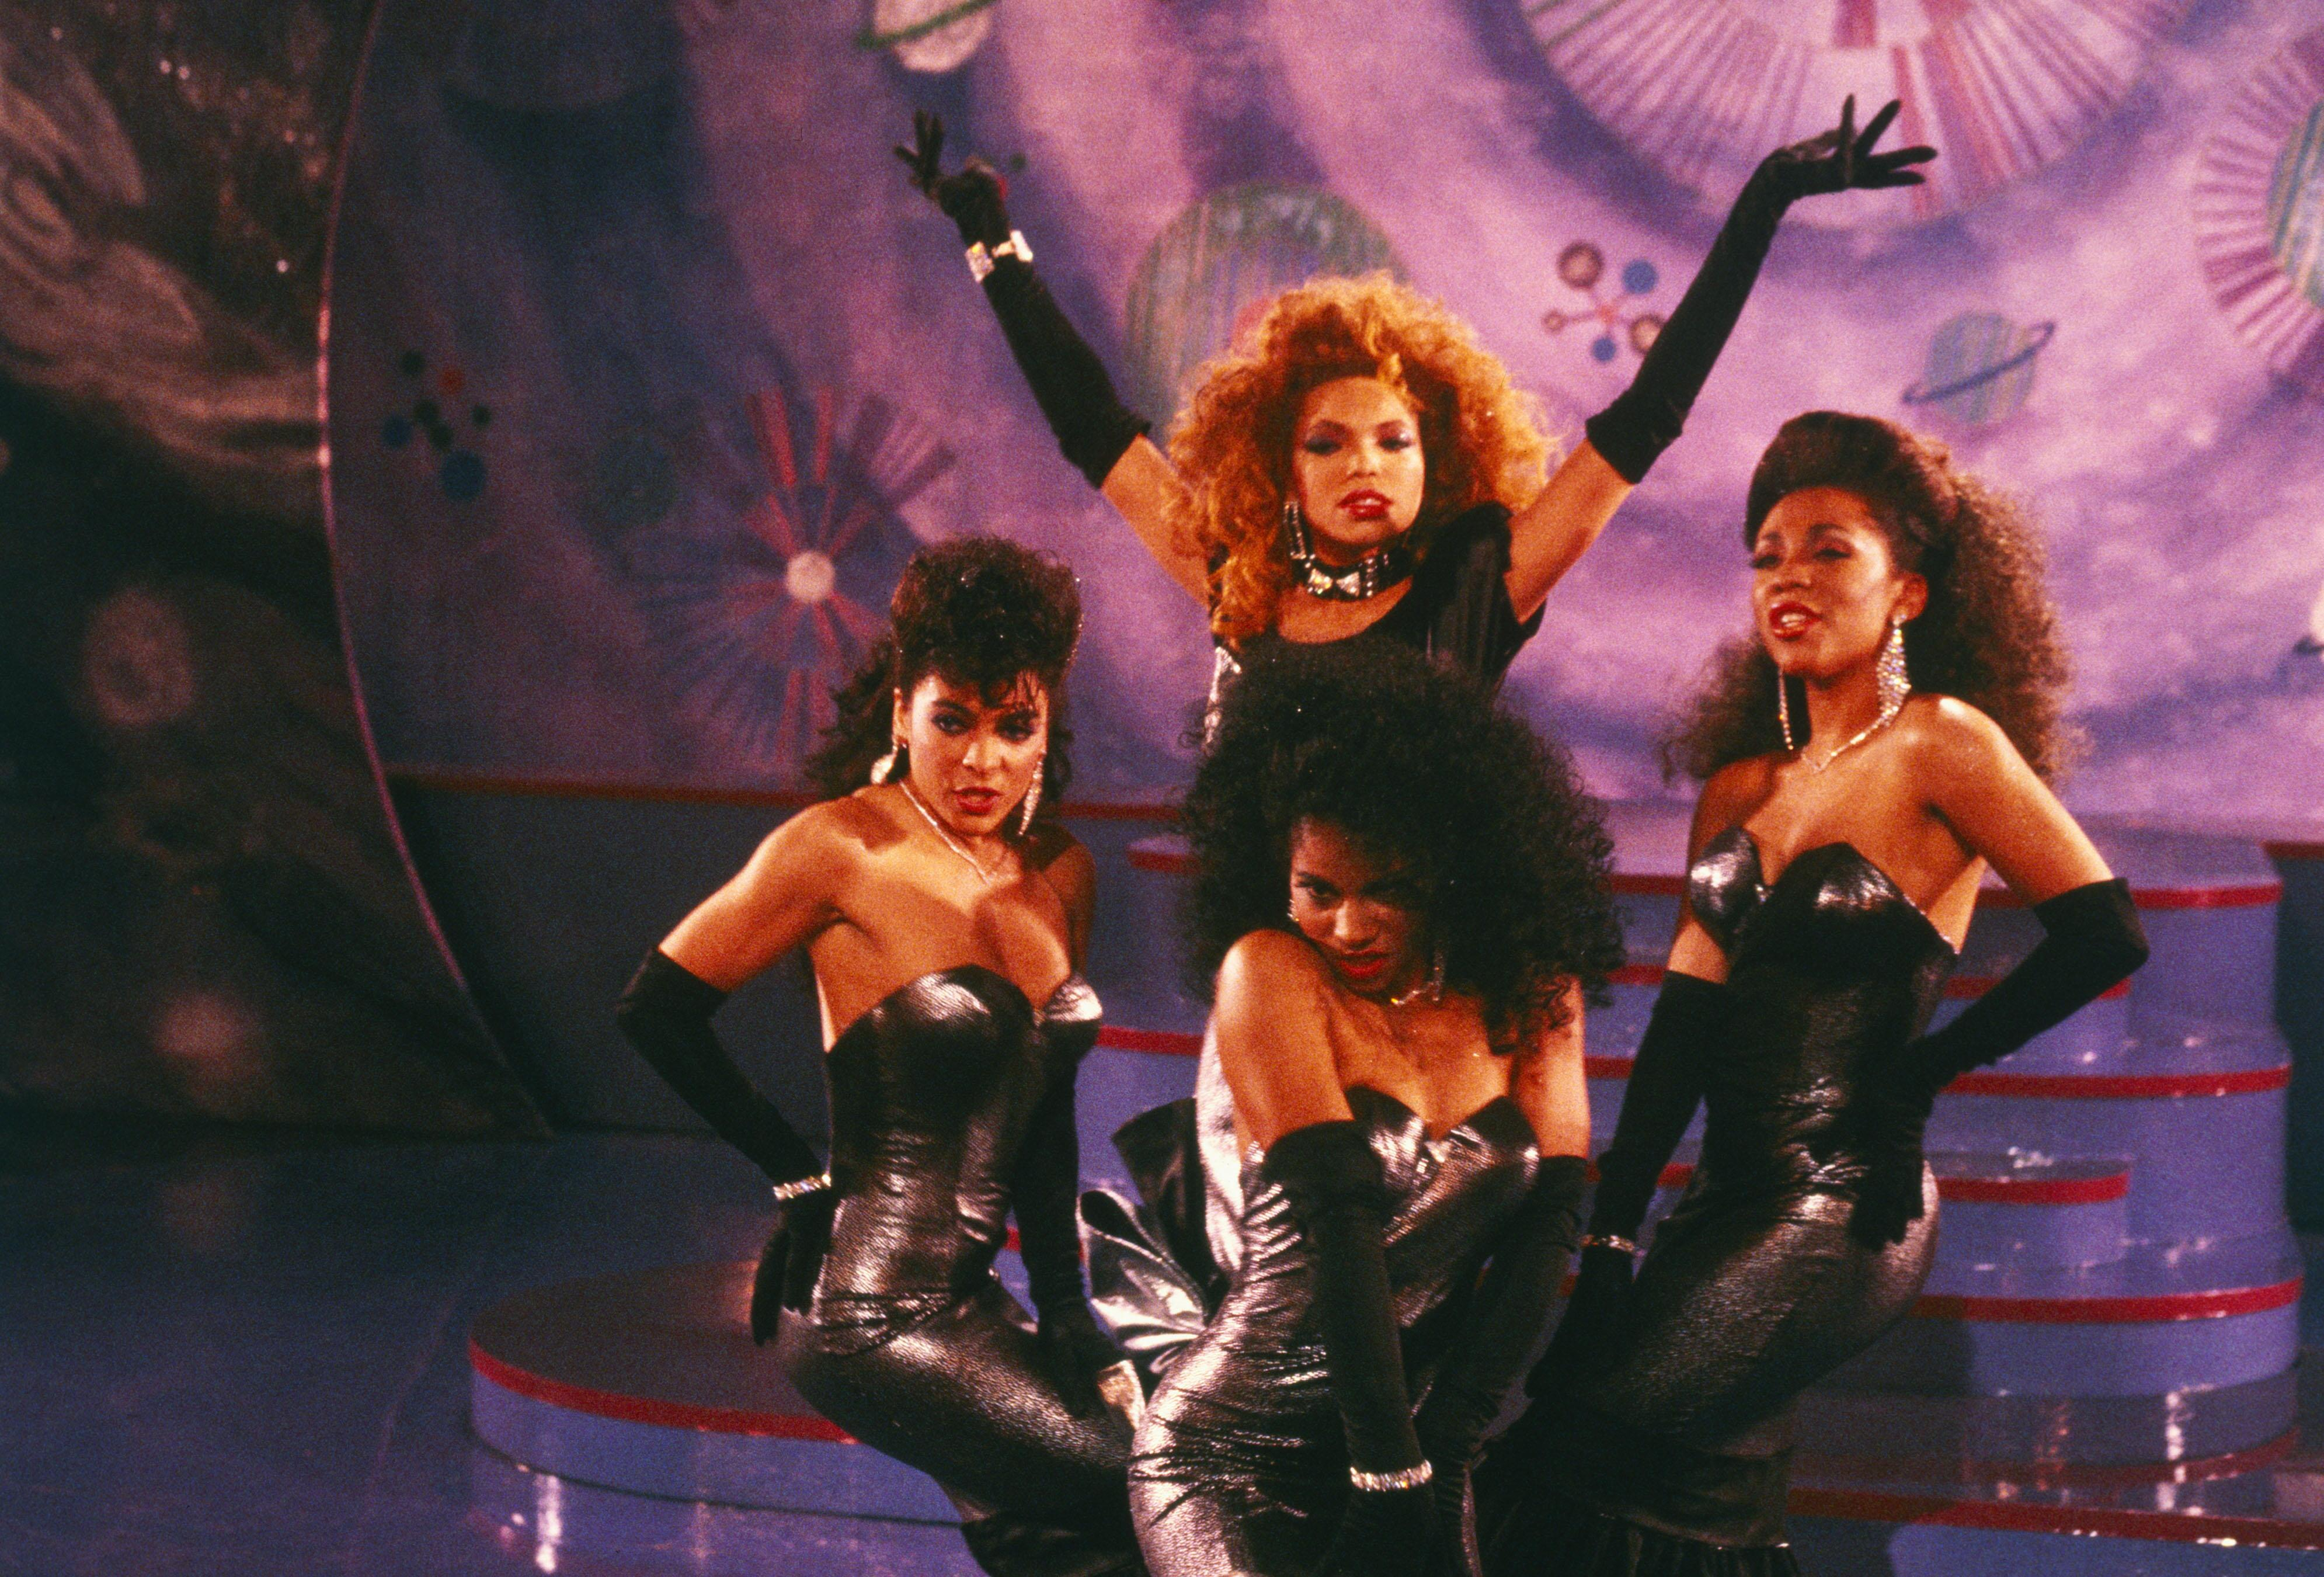 RELEASE DATE: February 12, 1988. MOVIE TITLE: School Daze. STUDIO: Columbia Pictures Corporation. PLOT: In the South of the United States are taking place confrontations between two groups of students who have different ideas and are not able to accept th